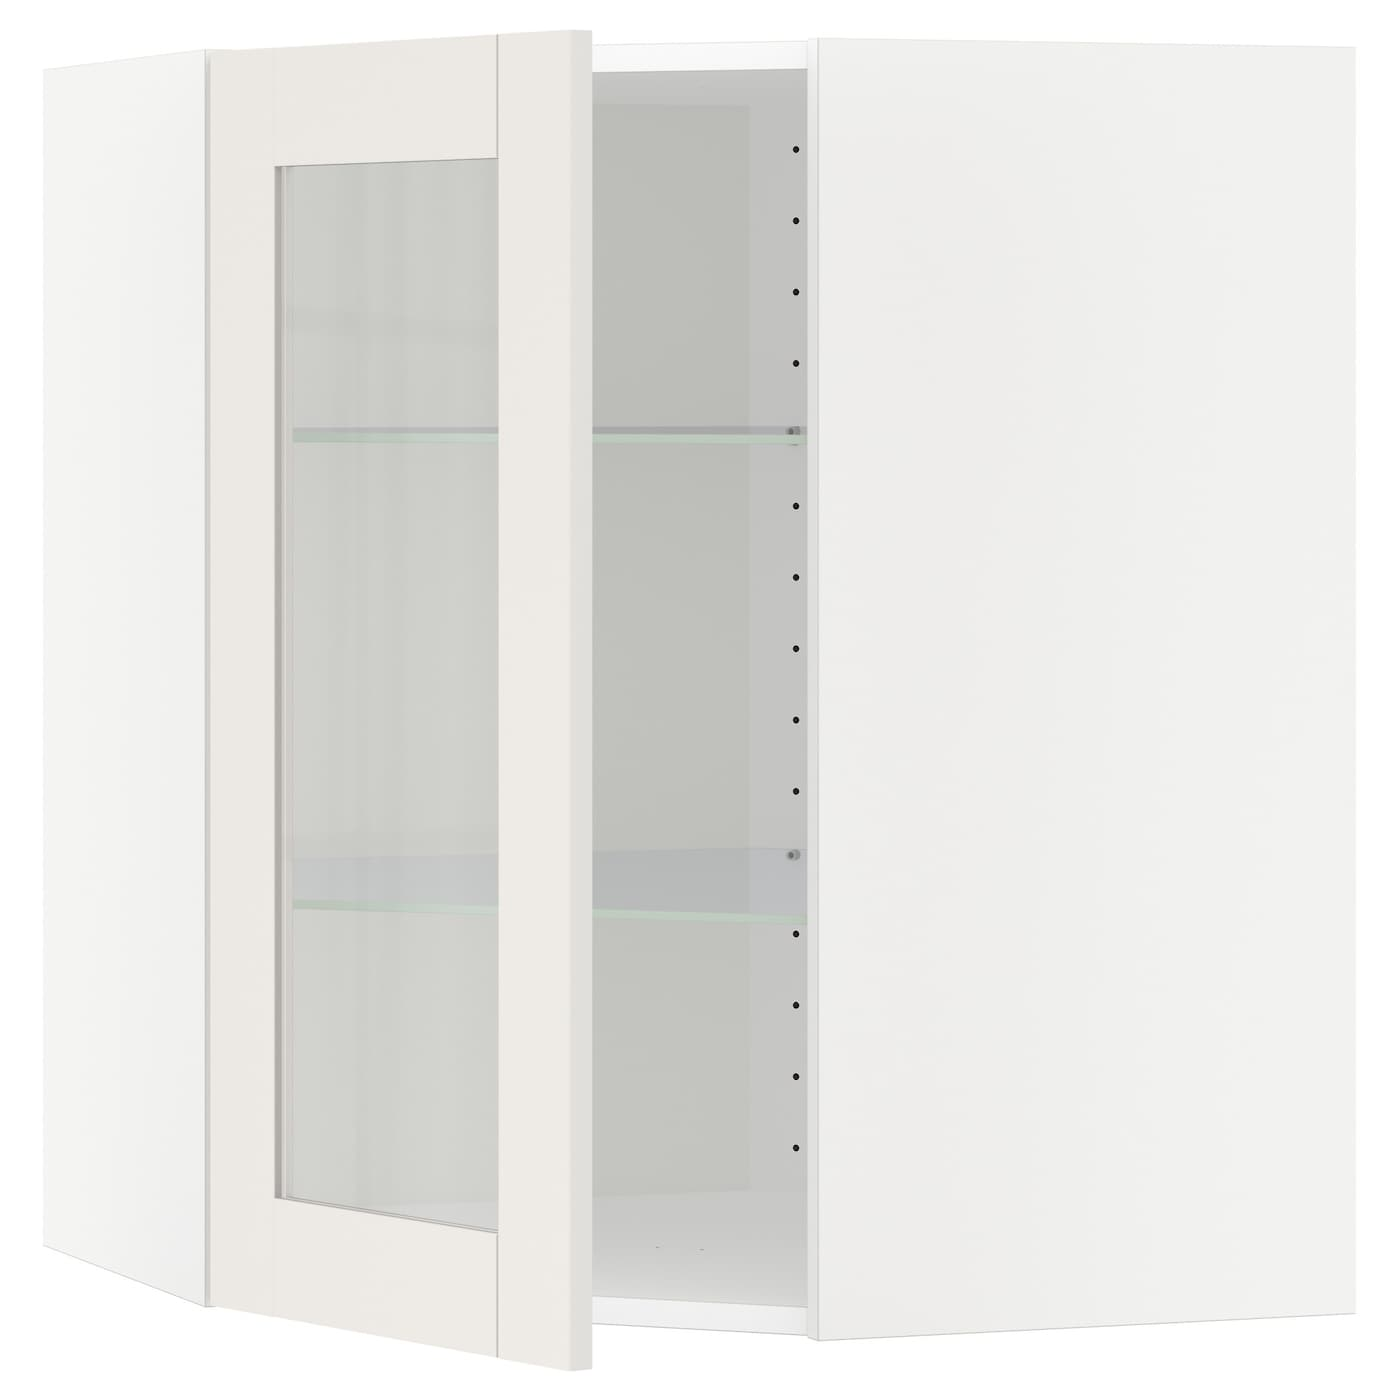 IKEA METOD corner wall cab w shelves/glass dr Sturdy frame construction, 18 mm thick.